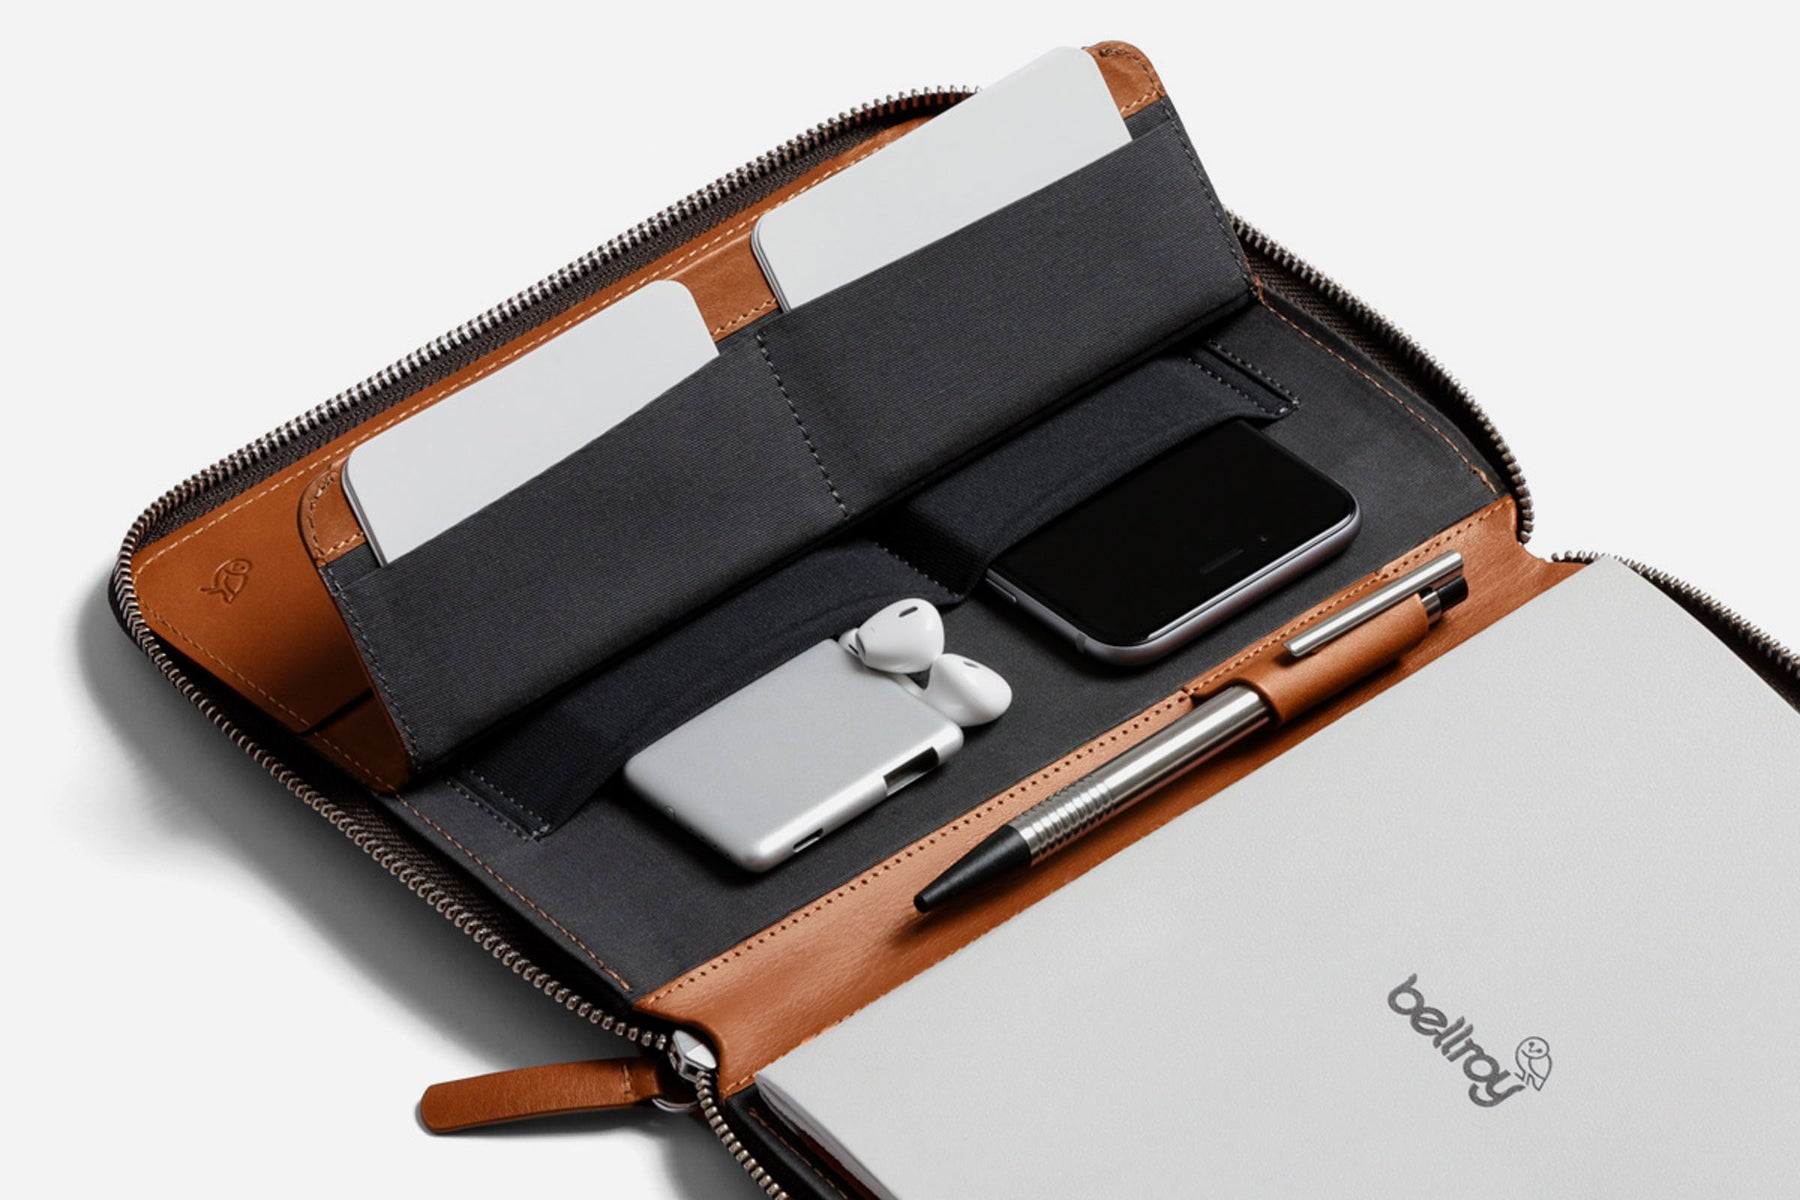 The Bellroy A5 Work Folio, A Compact Everyday Carry Companion